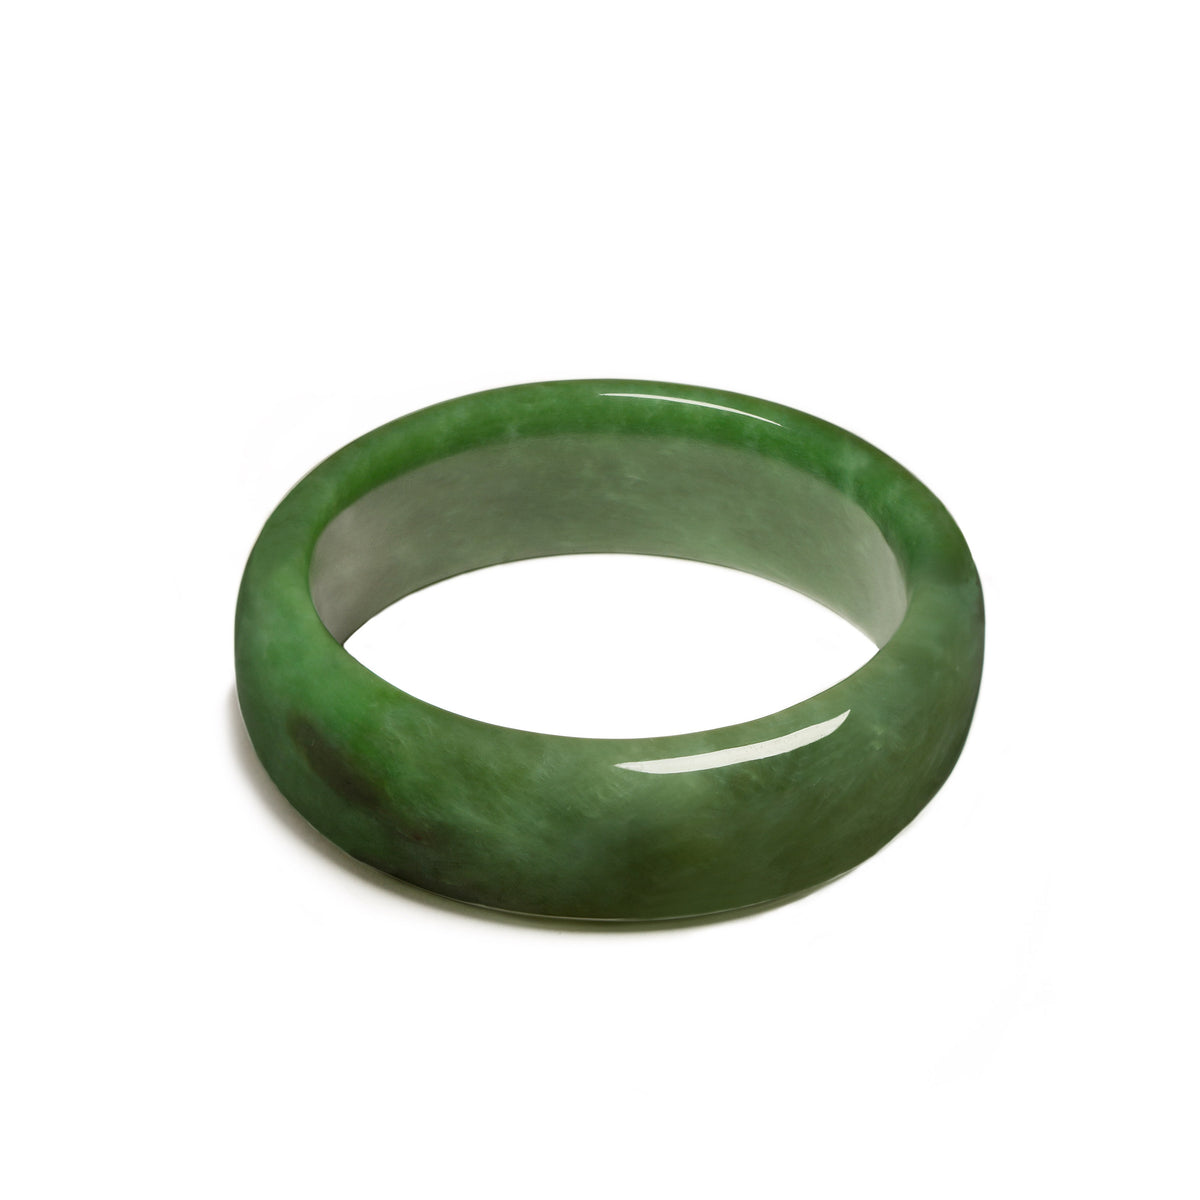 57mm Internal Diameter x 74mm External Diameter / New Zealand Pounamu // JSNRBAN57-RUS